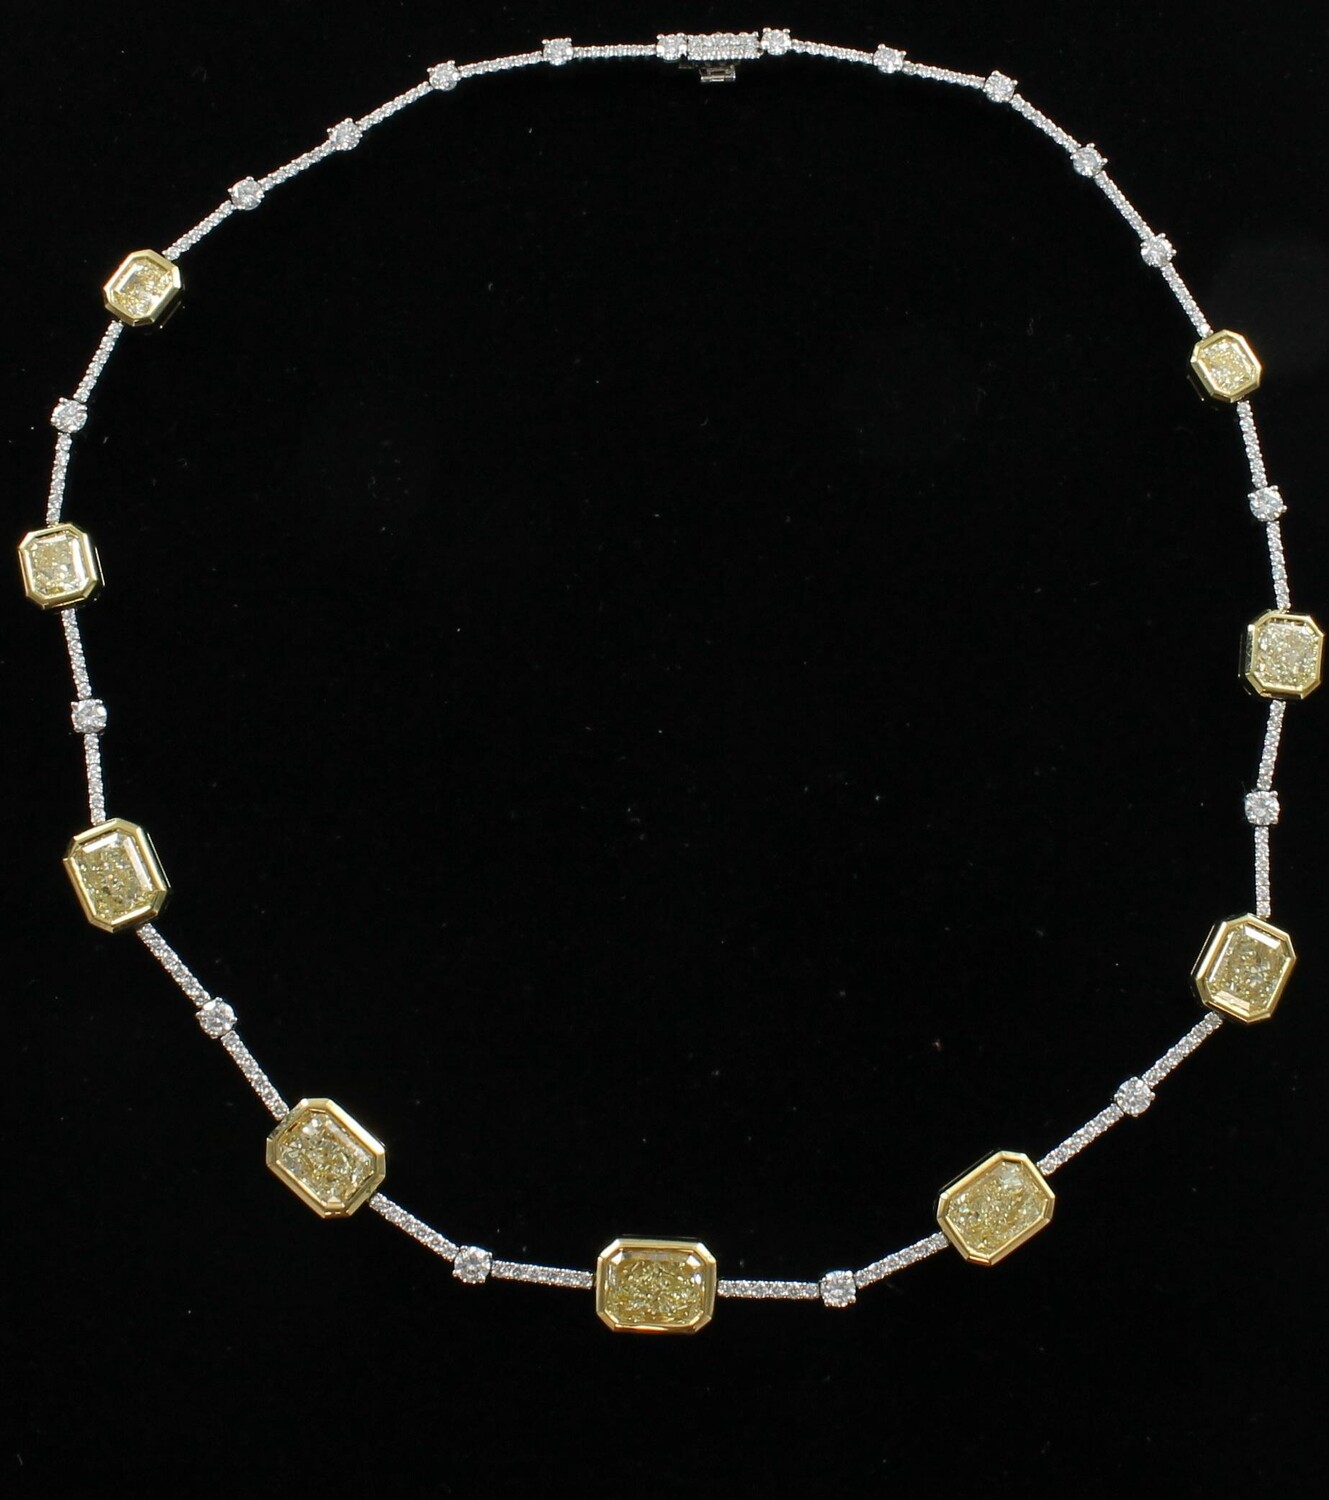 18KT AND PLATINUM NECKLACE WITH 16.0 CT TW OF FANCY YELLOW DIAMONDS & 4.0 CT TW OF WHITE DIAMONDS